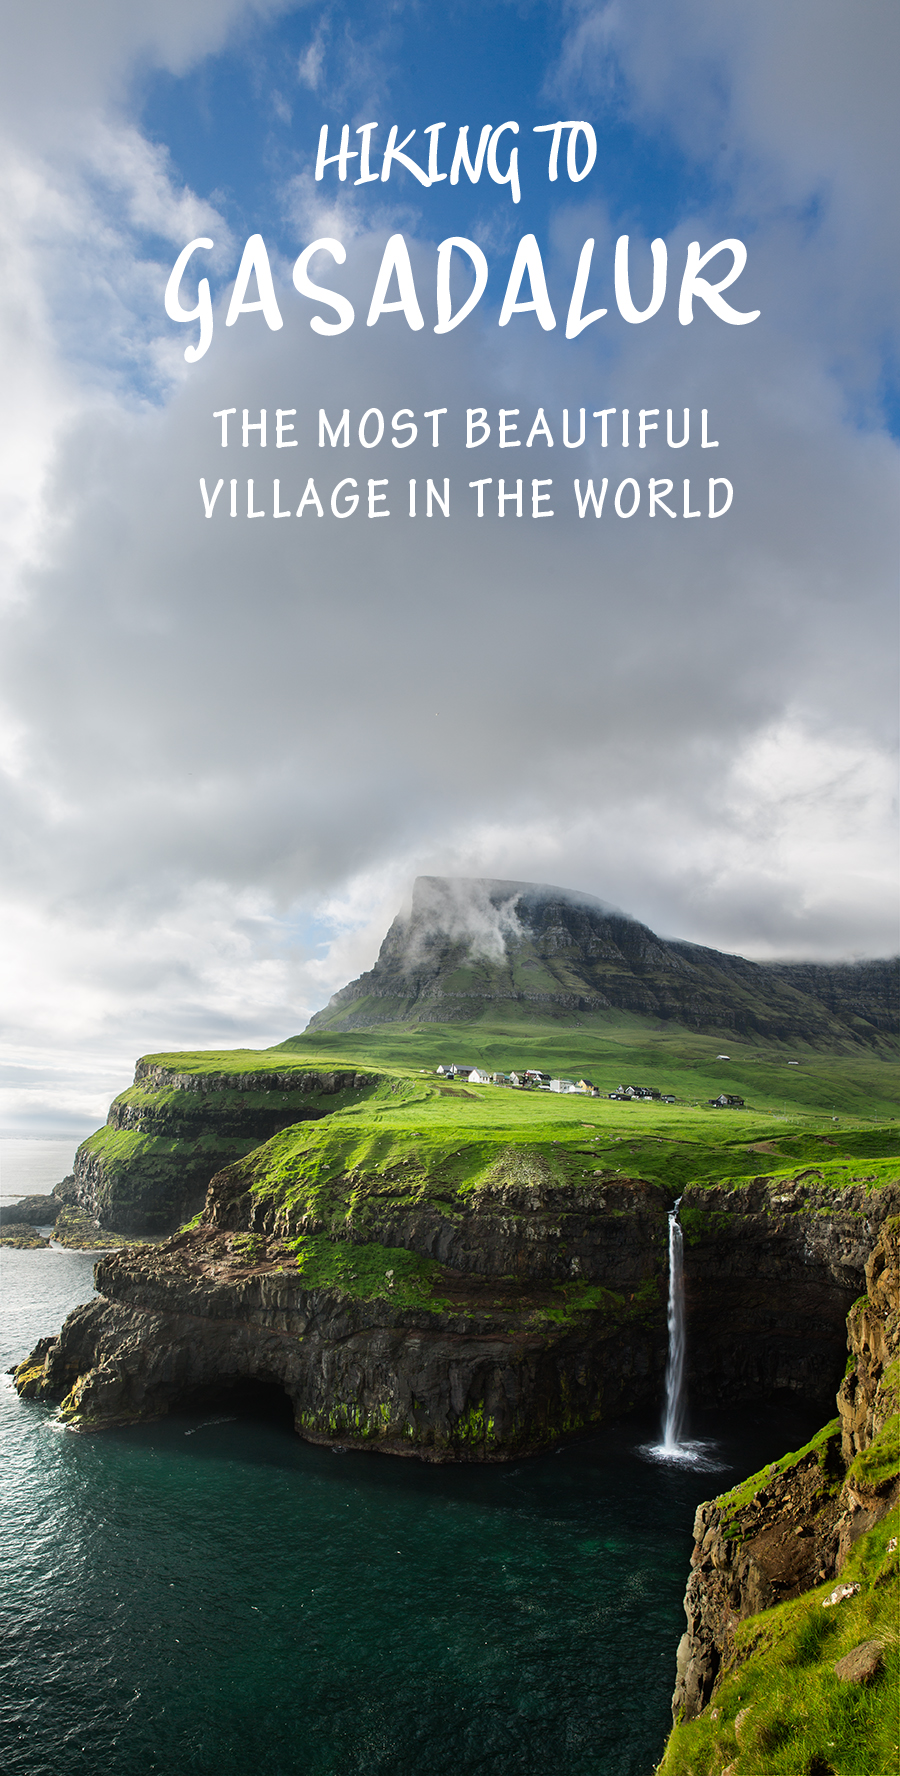 This hike to Gasadalur, Faroe Islands, has some of the most amazing views and the most stunning village I've seen.